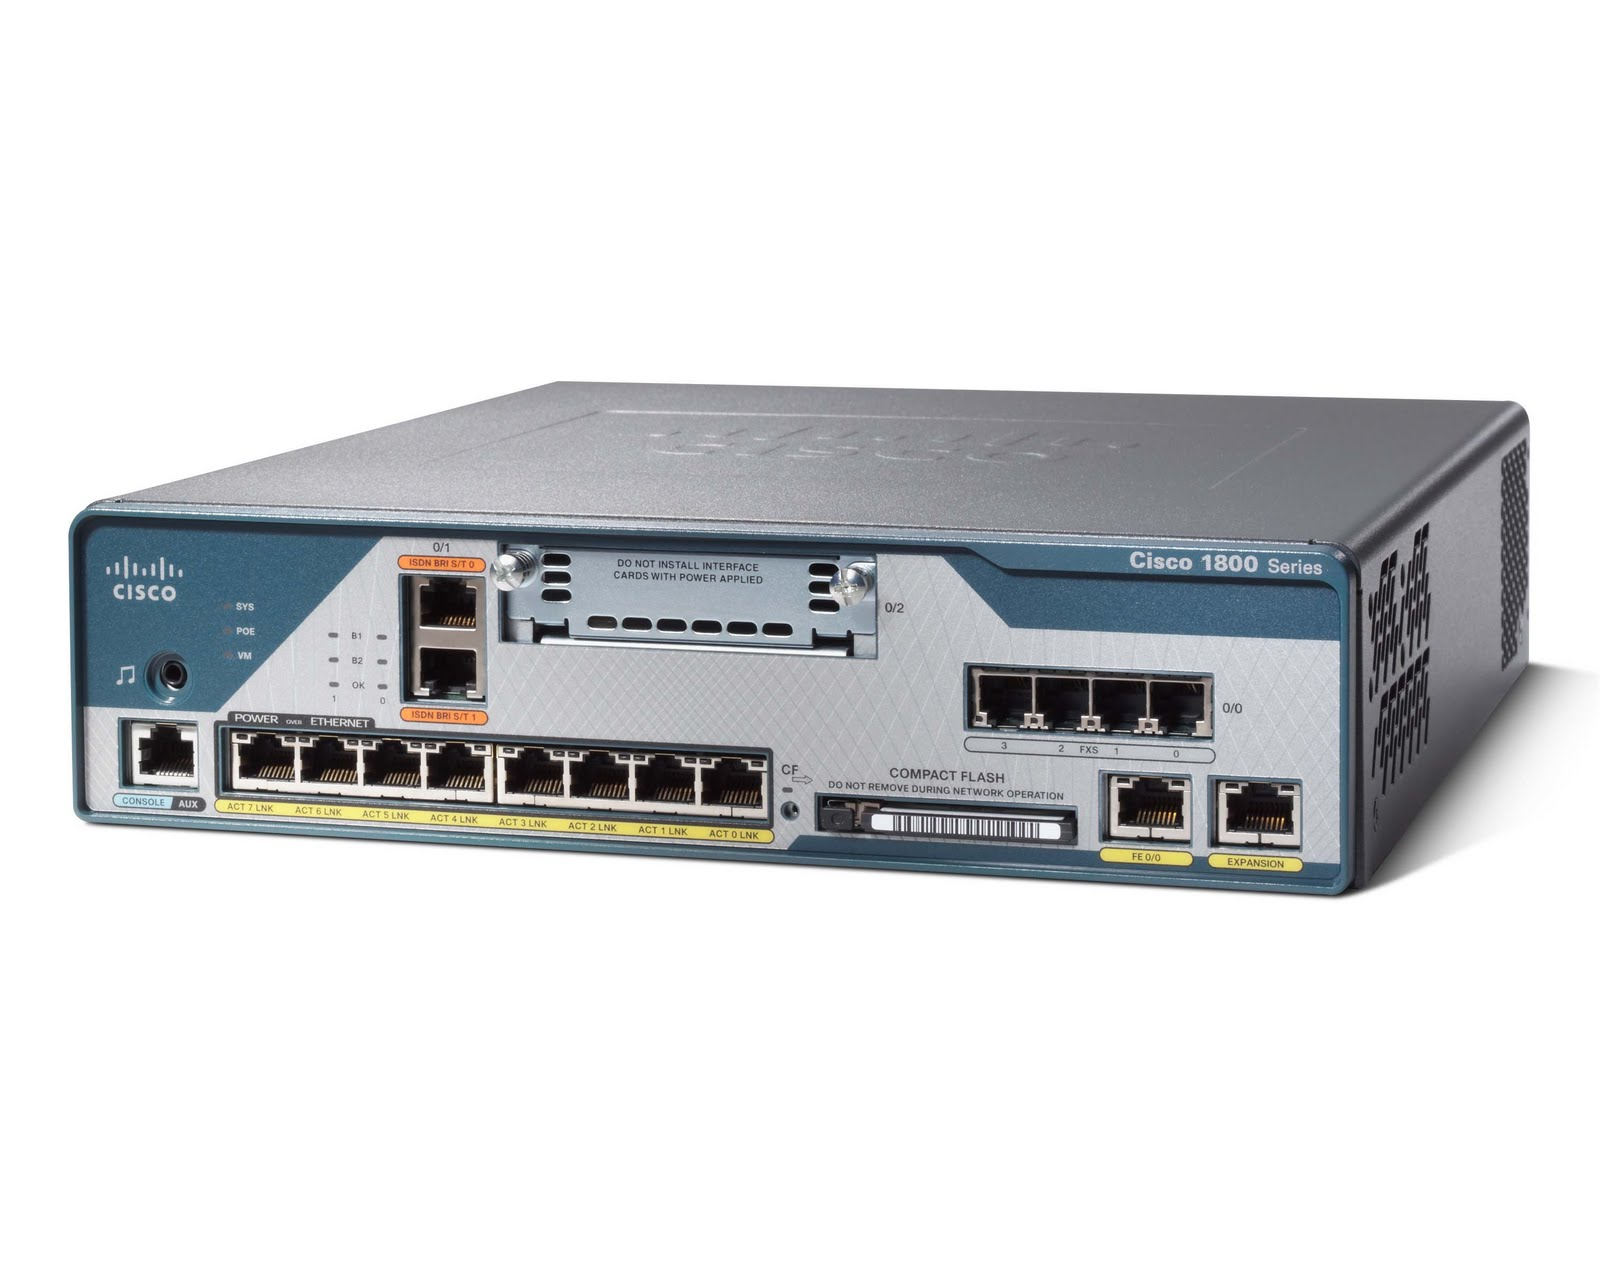 The Basic Network Device Router Hub Switch